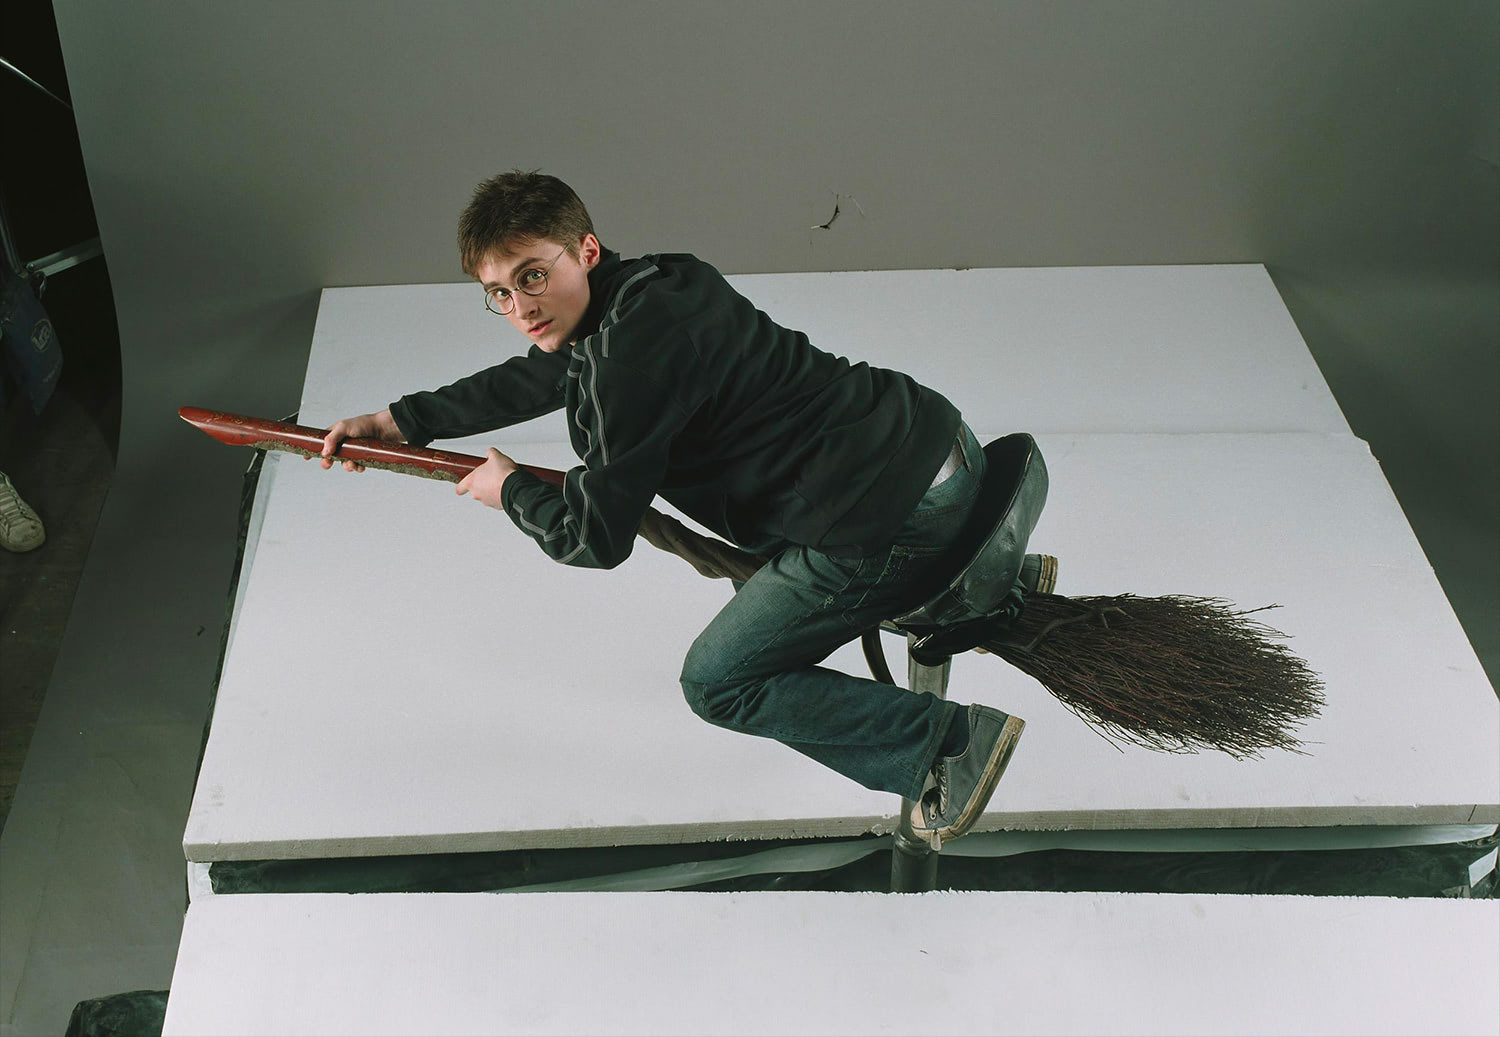 Portrait of Harry Potter riding his broom